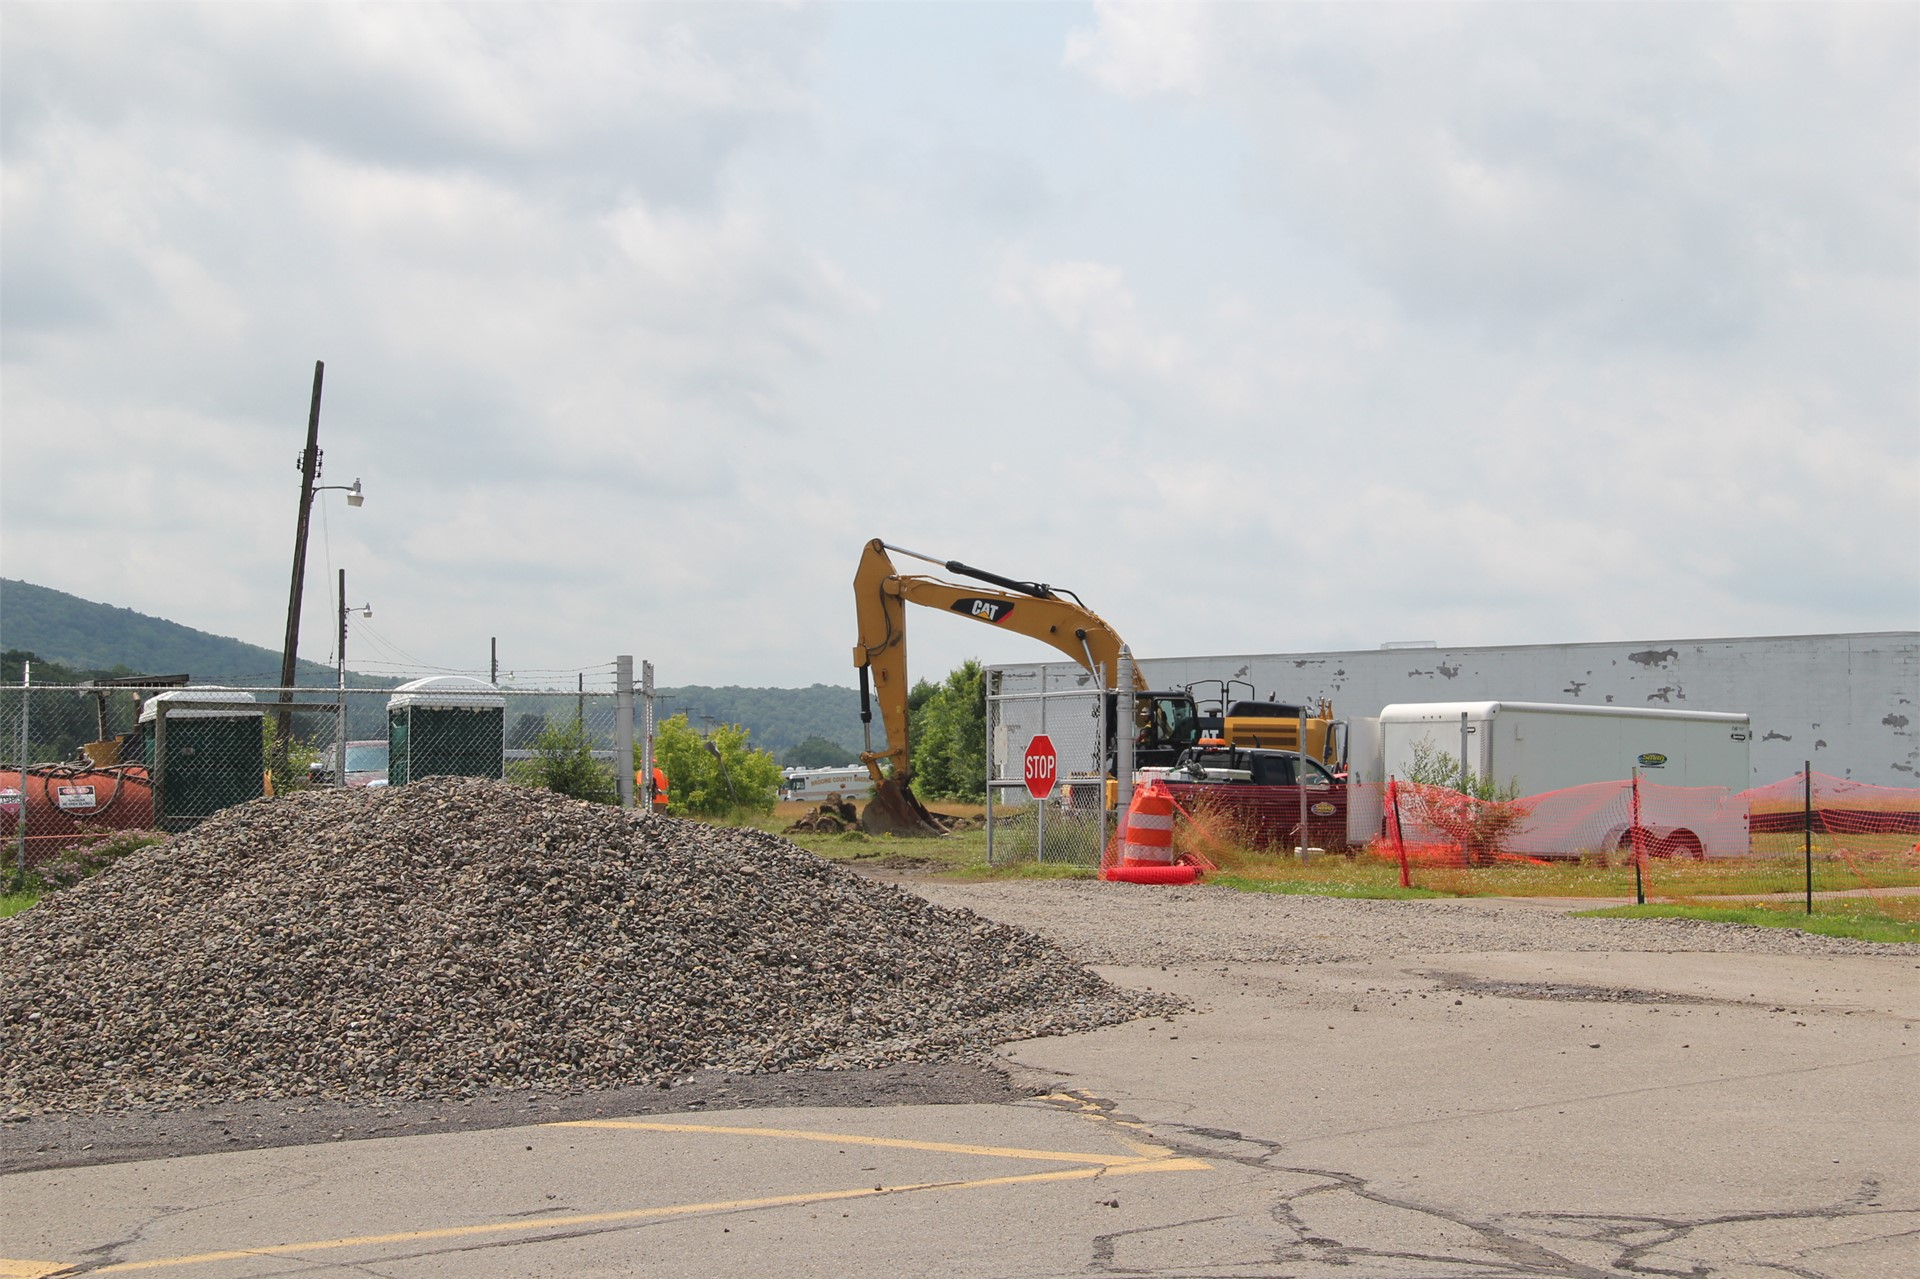 wide shot of crane at construction scene outdoors at field